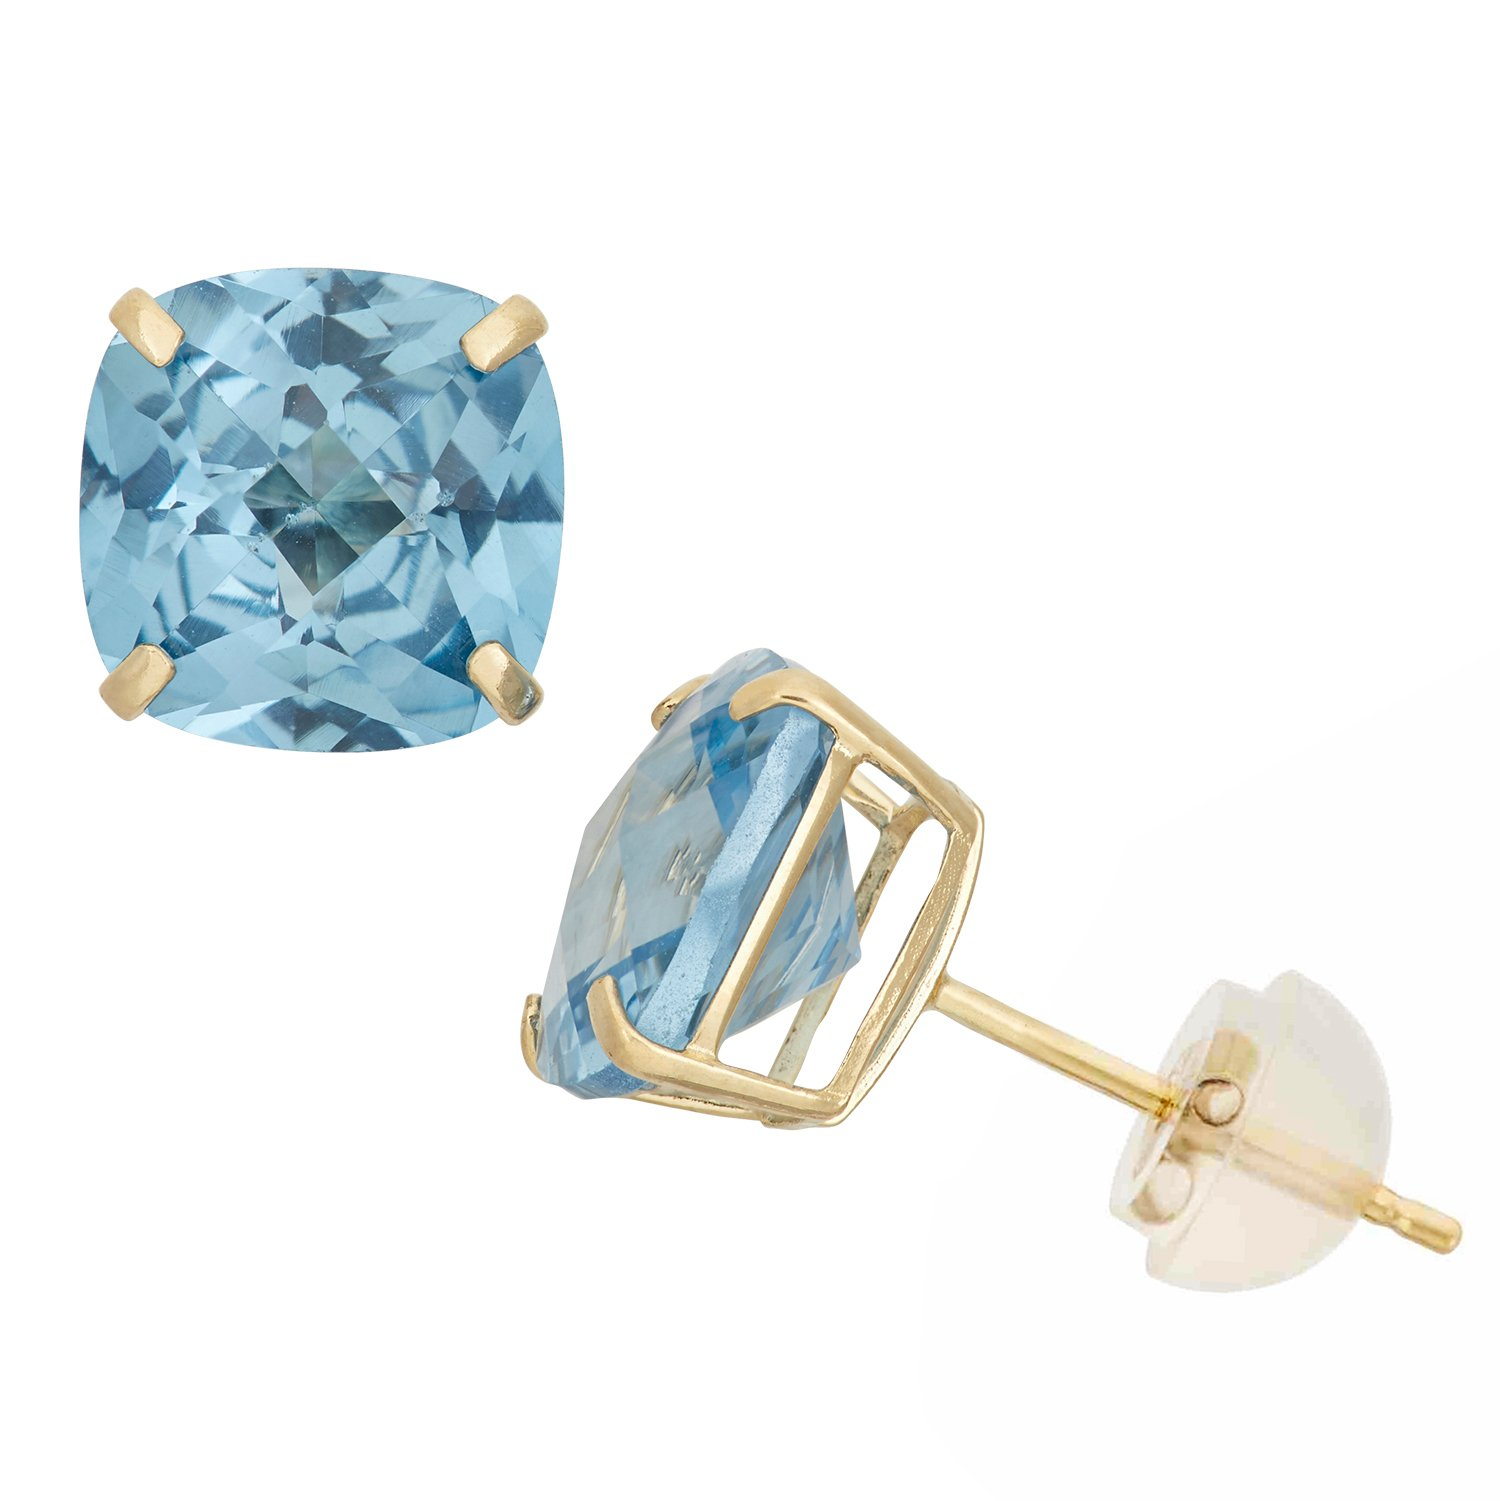 Created Aquamarine Cushion-Cut Stud Earrings in 10K Yellow Gold, 8x8mm, Comfort Fit